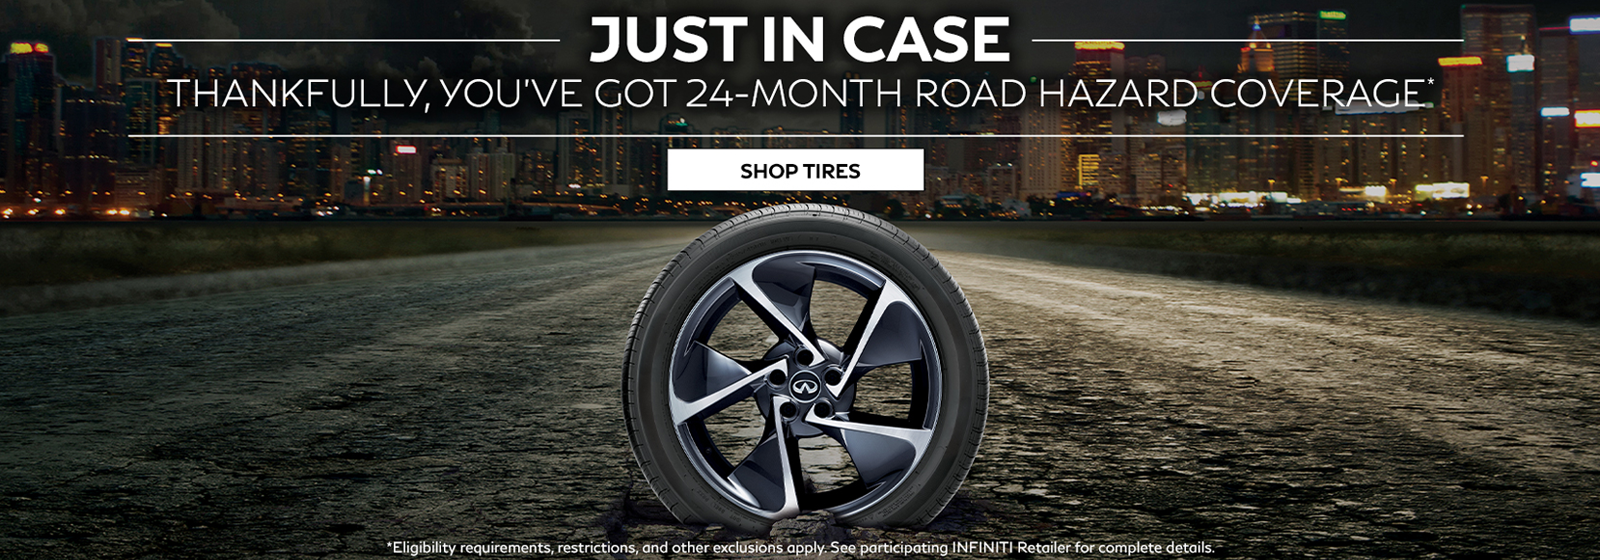 Just in case. Thankfully, you've got 24-month road hazard coverage. Click to shop tires.